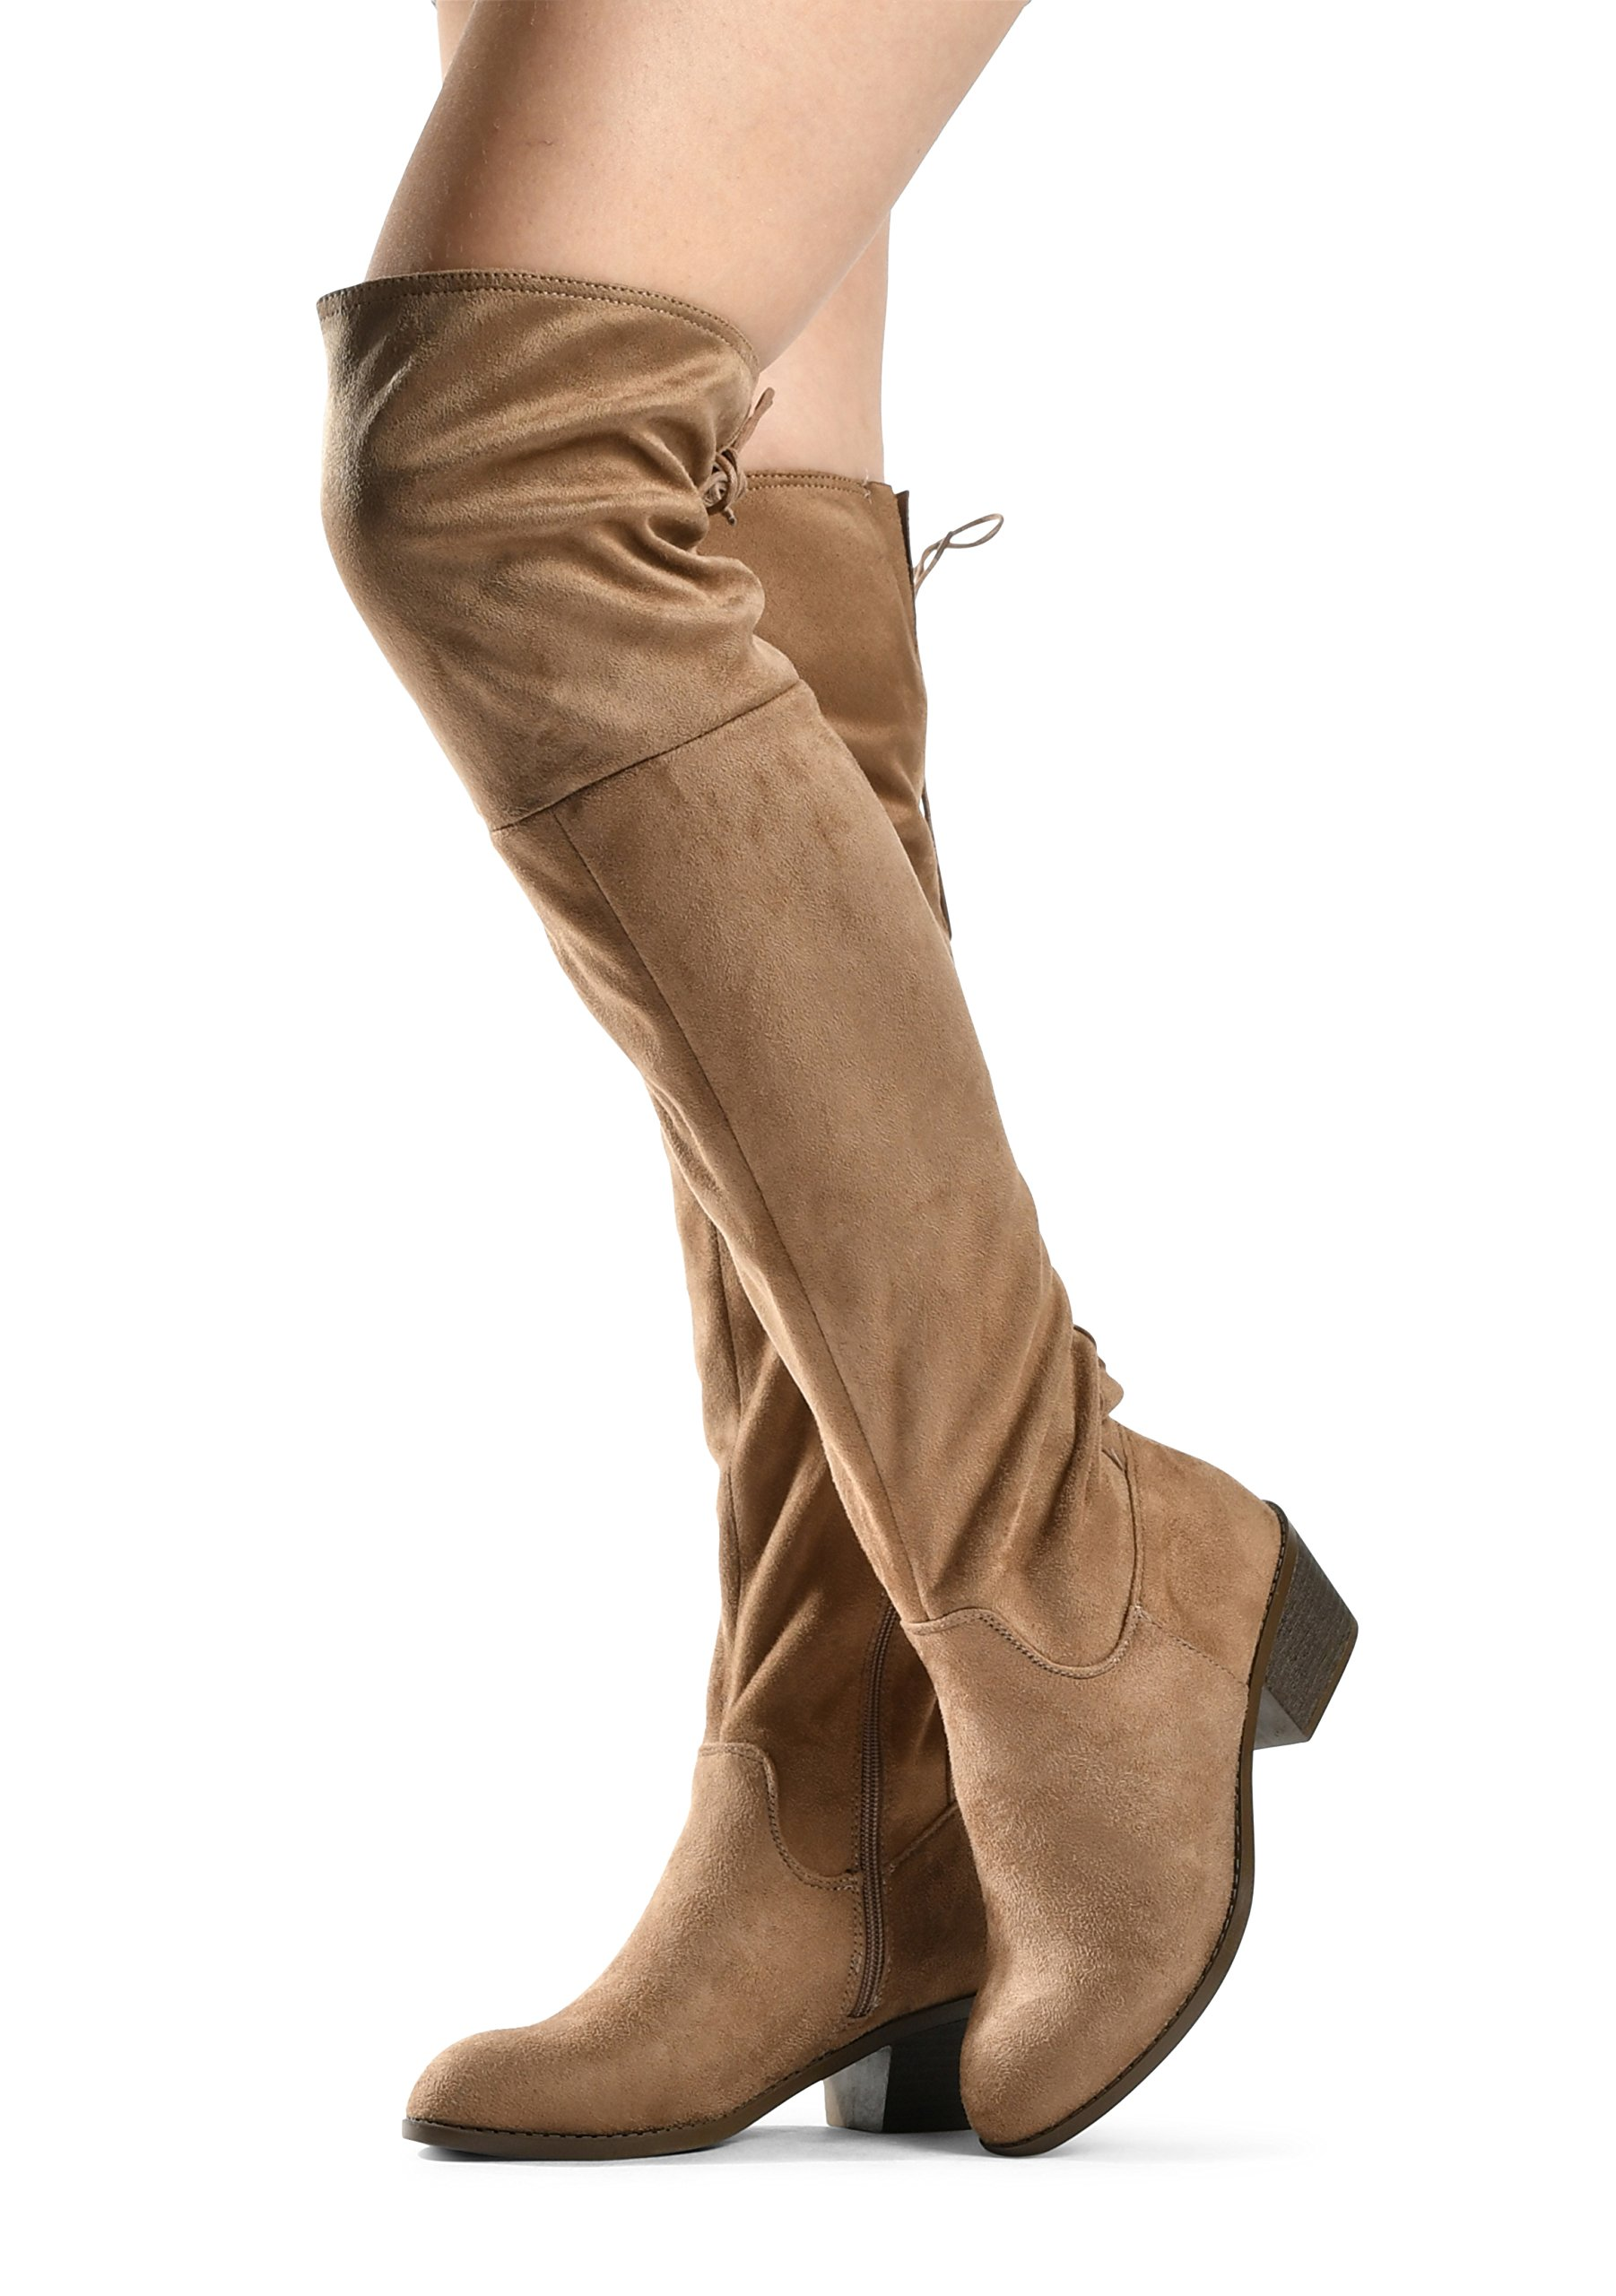 Women's Over The Knee Low Heel Kate Lace Up Tall BootsTaupe 7.5